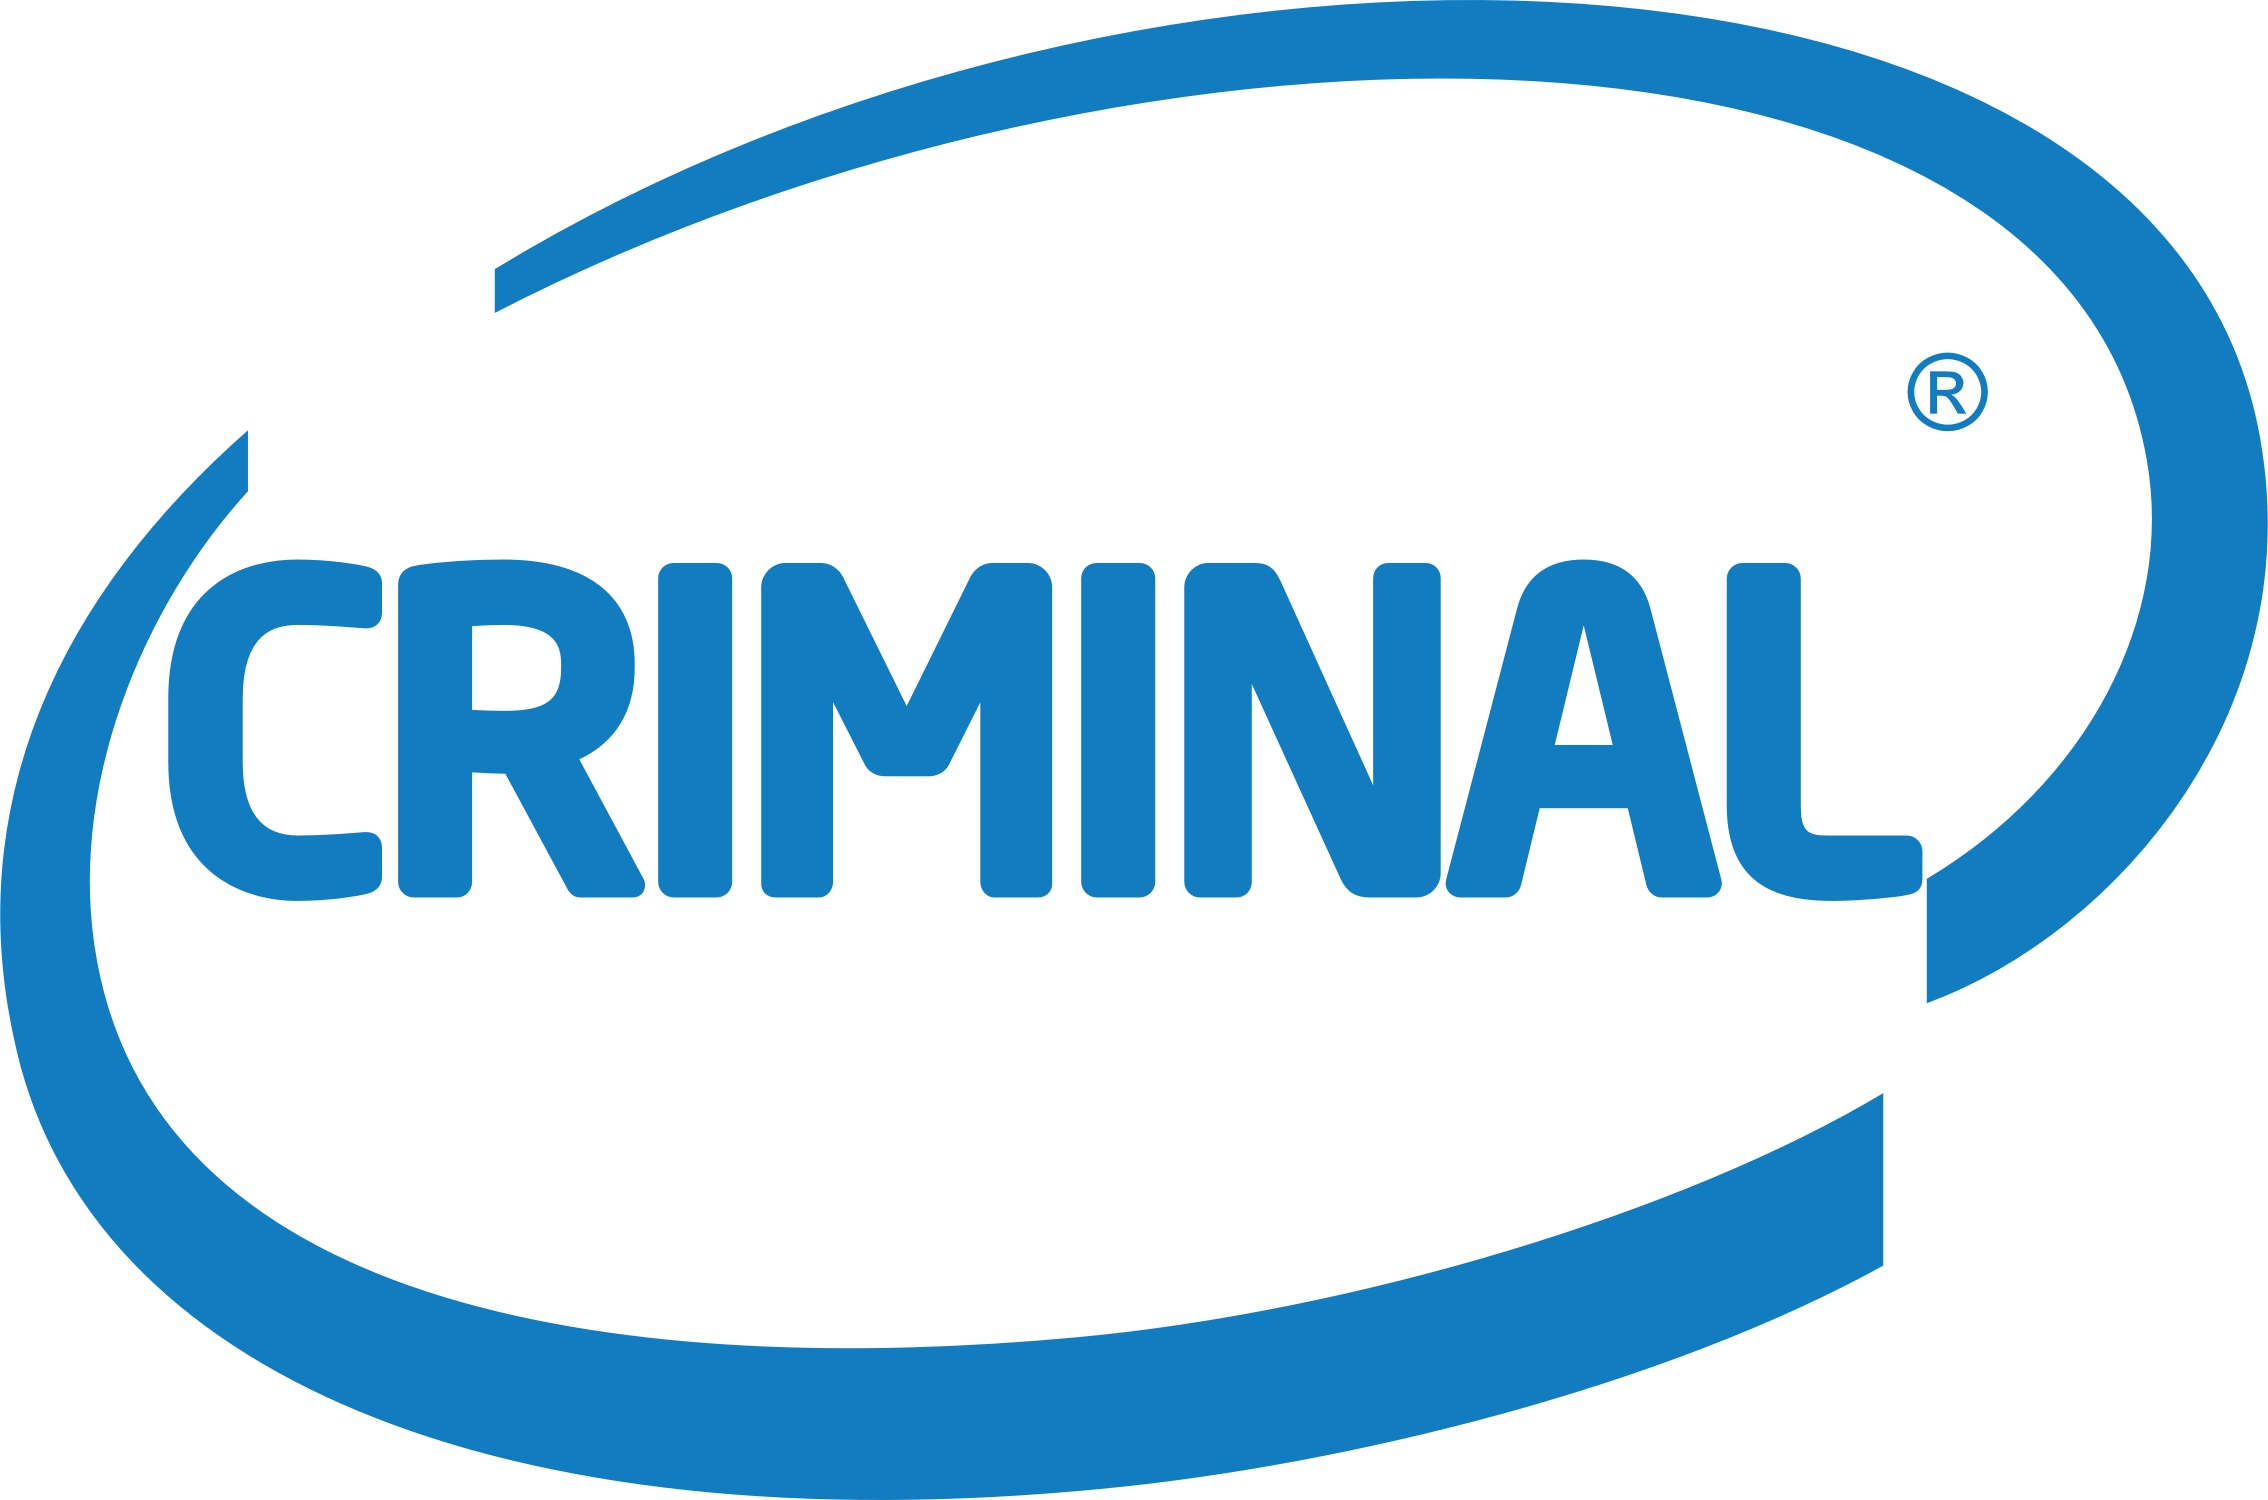 https://openclipart.org/image/2400px/svg_to_png/225414/Criminal.png